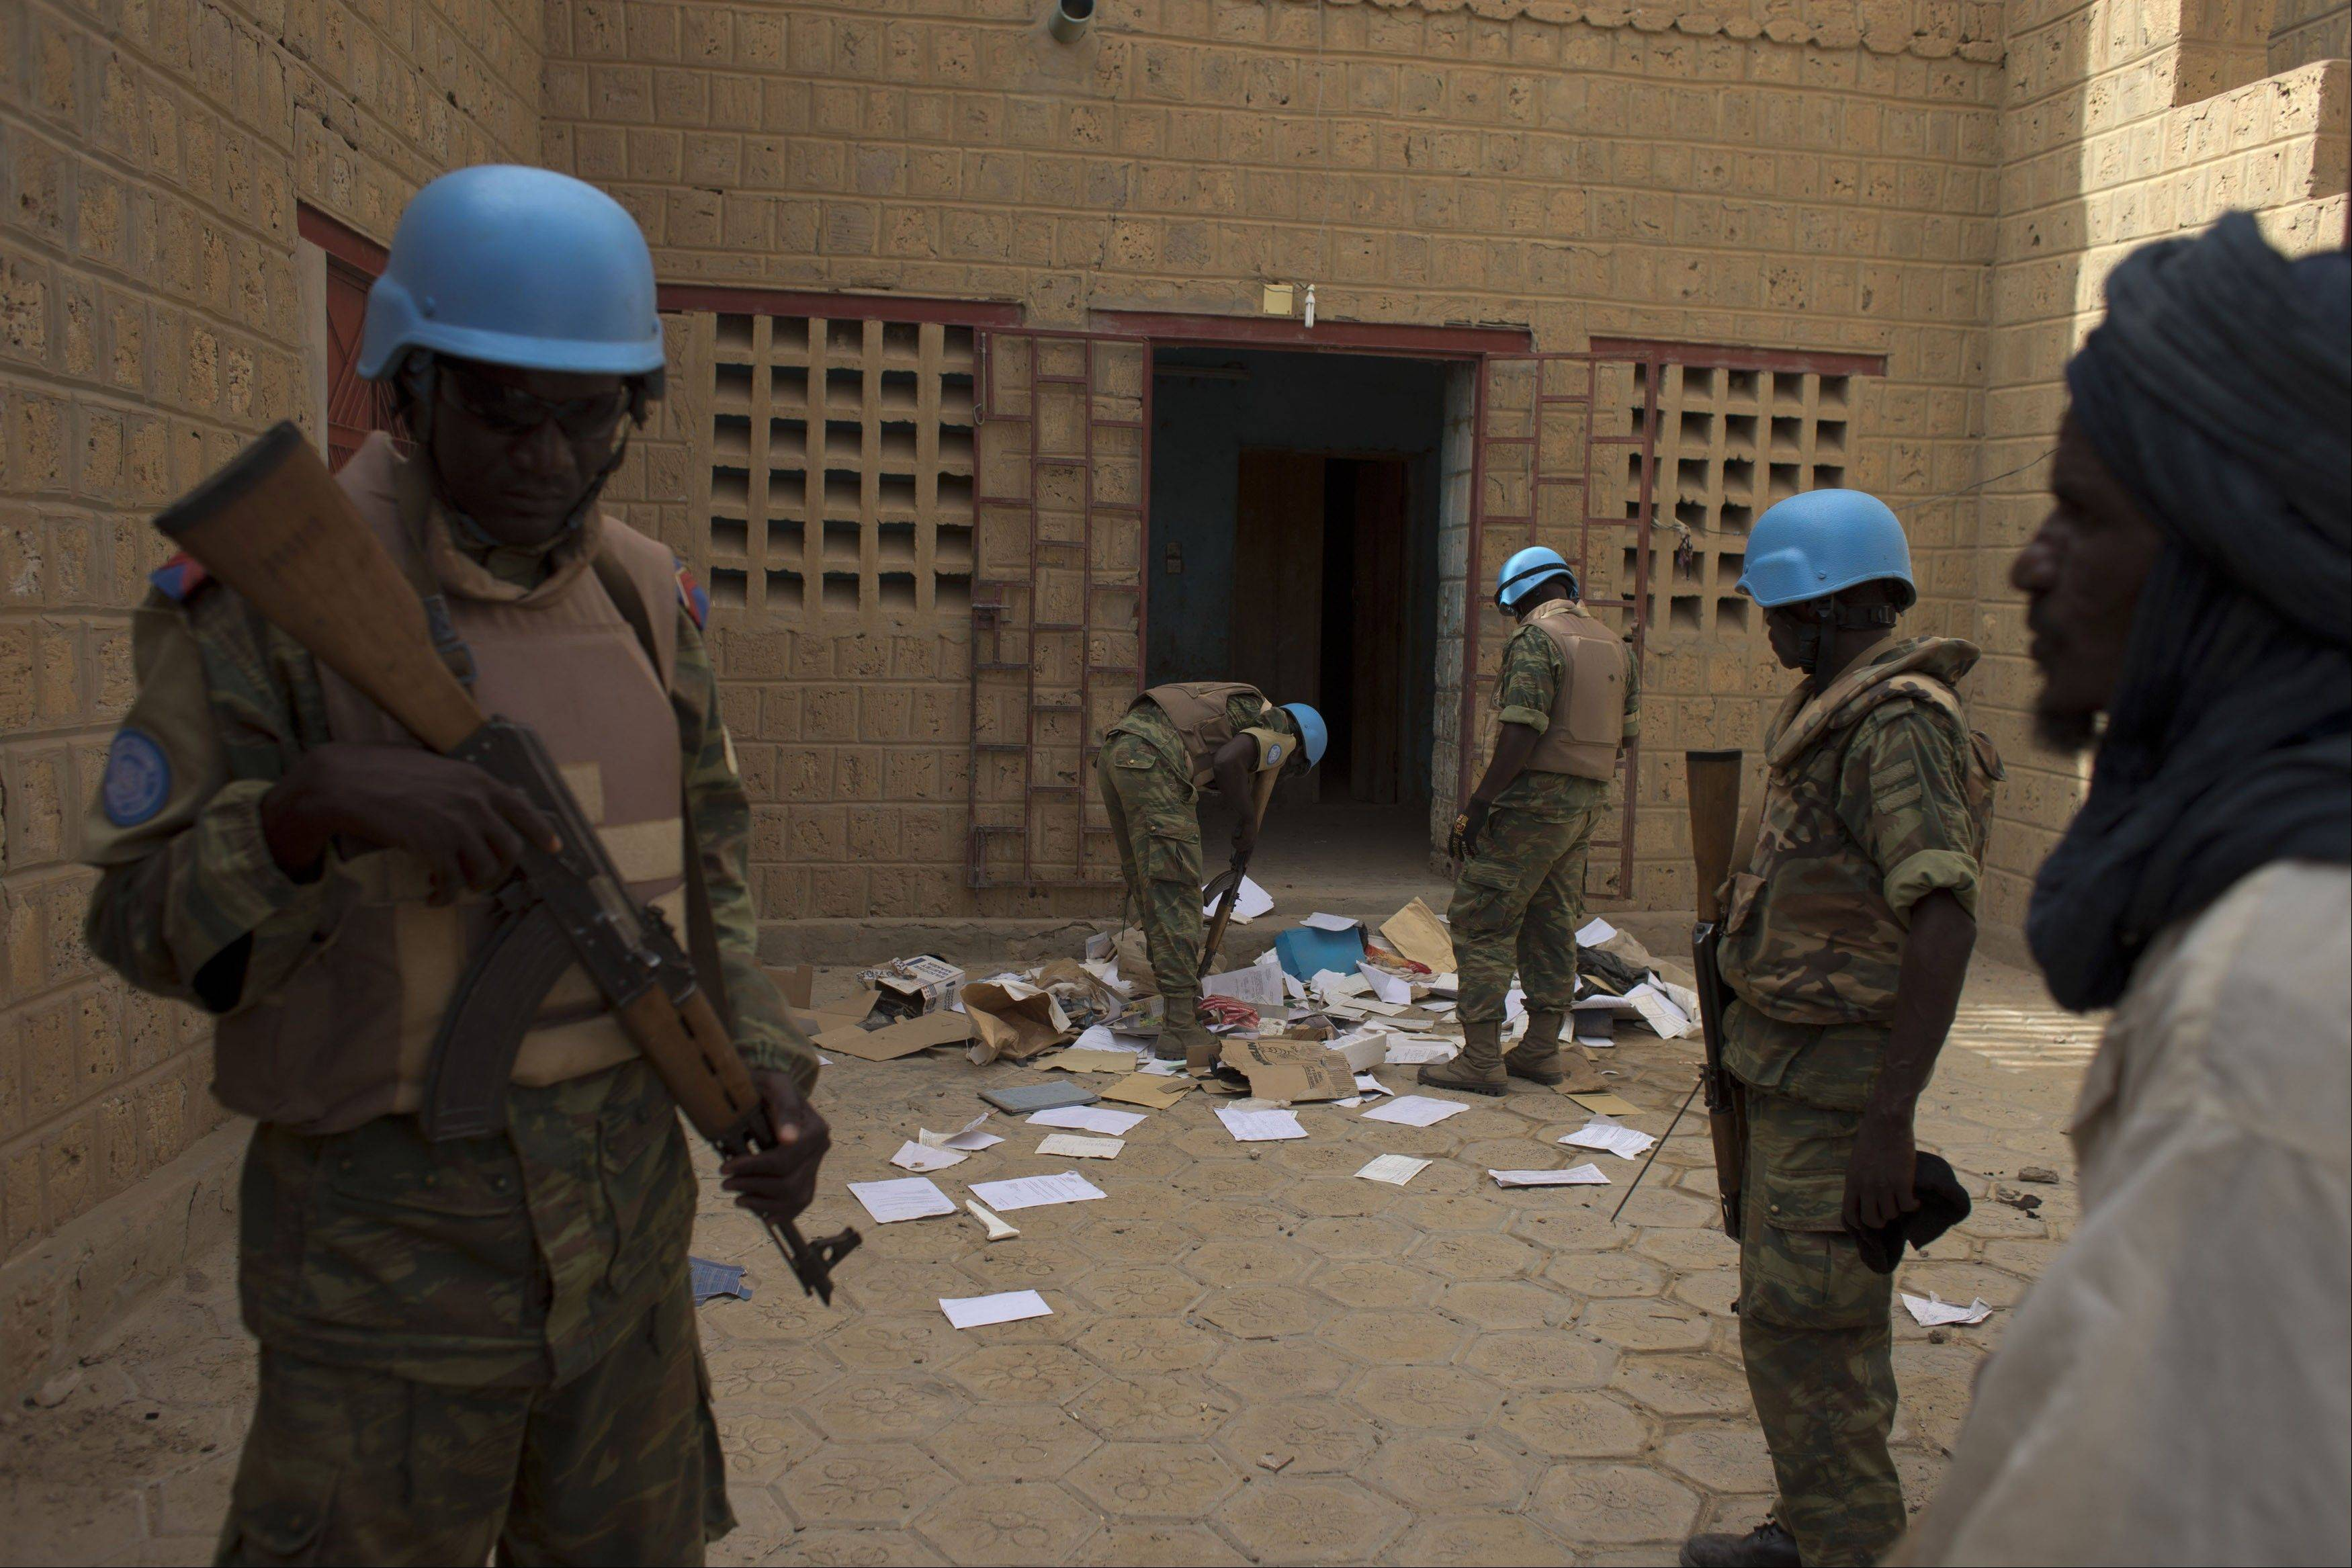 United Nations peacekeepers search a house suspected to have been used by members of al-Qaida�s North African branch in Timbuktu, Mali, july 23. The al-Qaida cell occupied Timbuktu for 10 months until January 2013. When they fled, they left behind thousands of pages of documents.